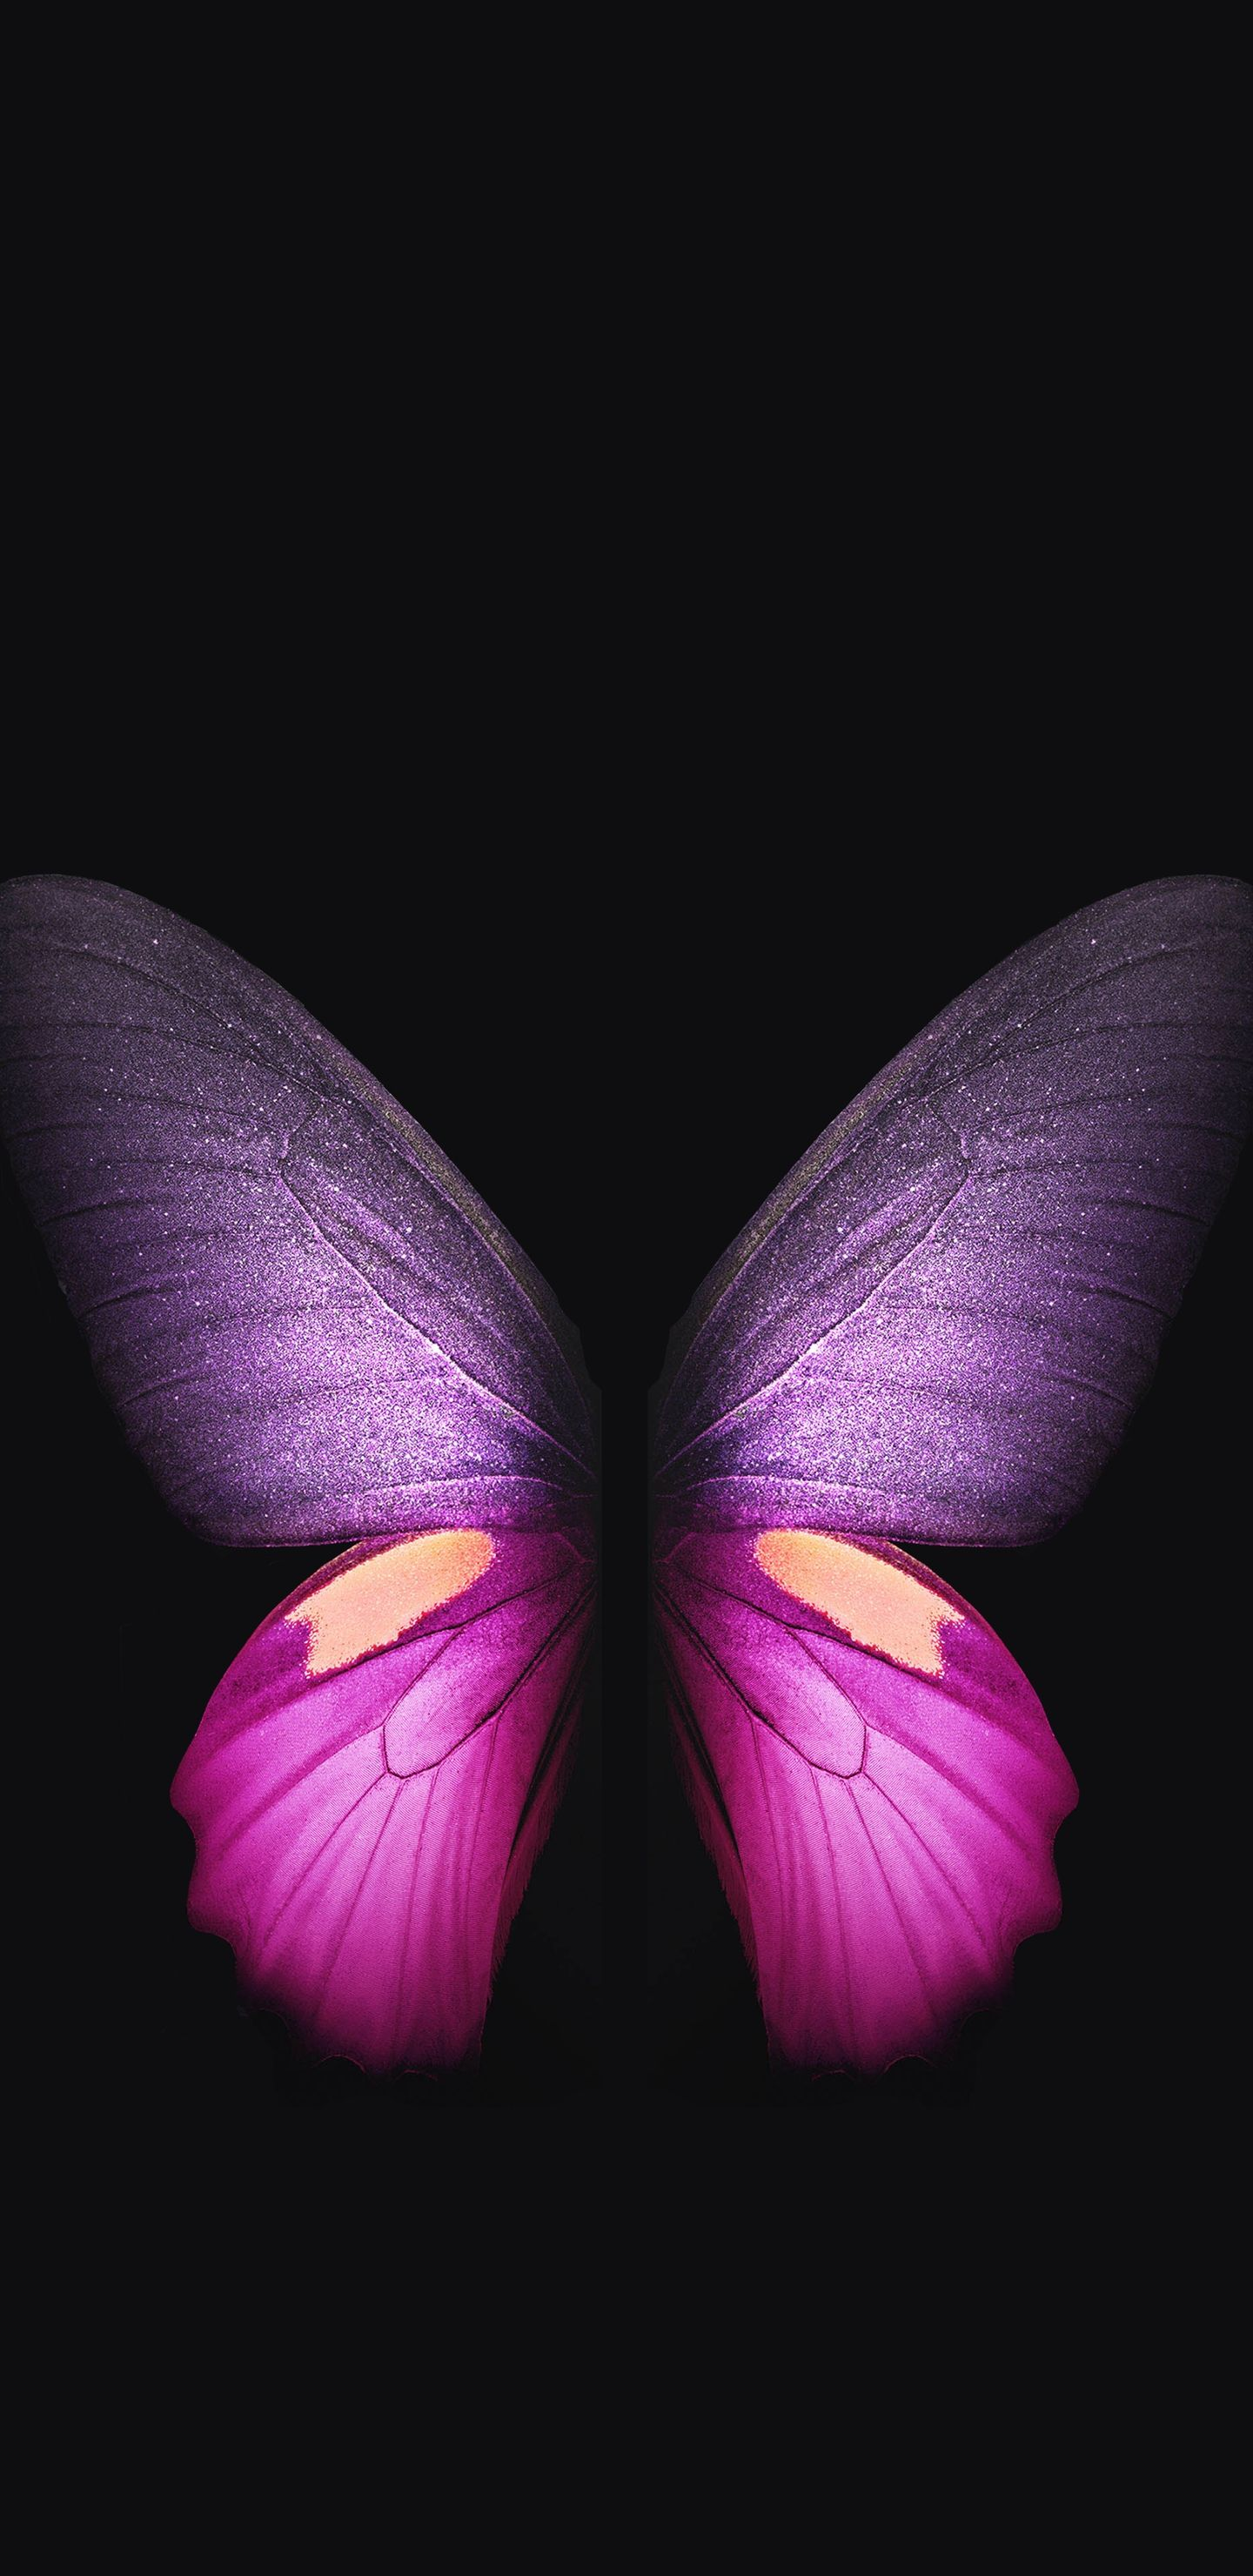 Download Samsung Galaxy Fold Wallpapers [QHD] Official 1440x2960